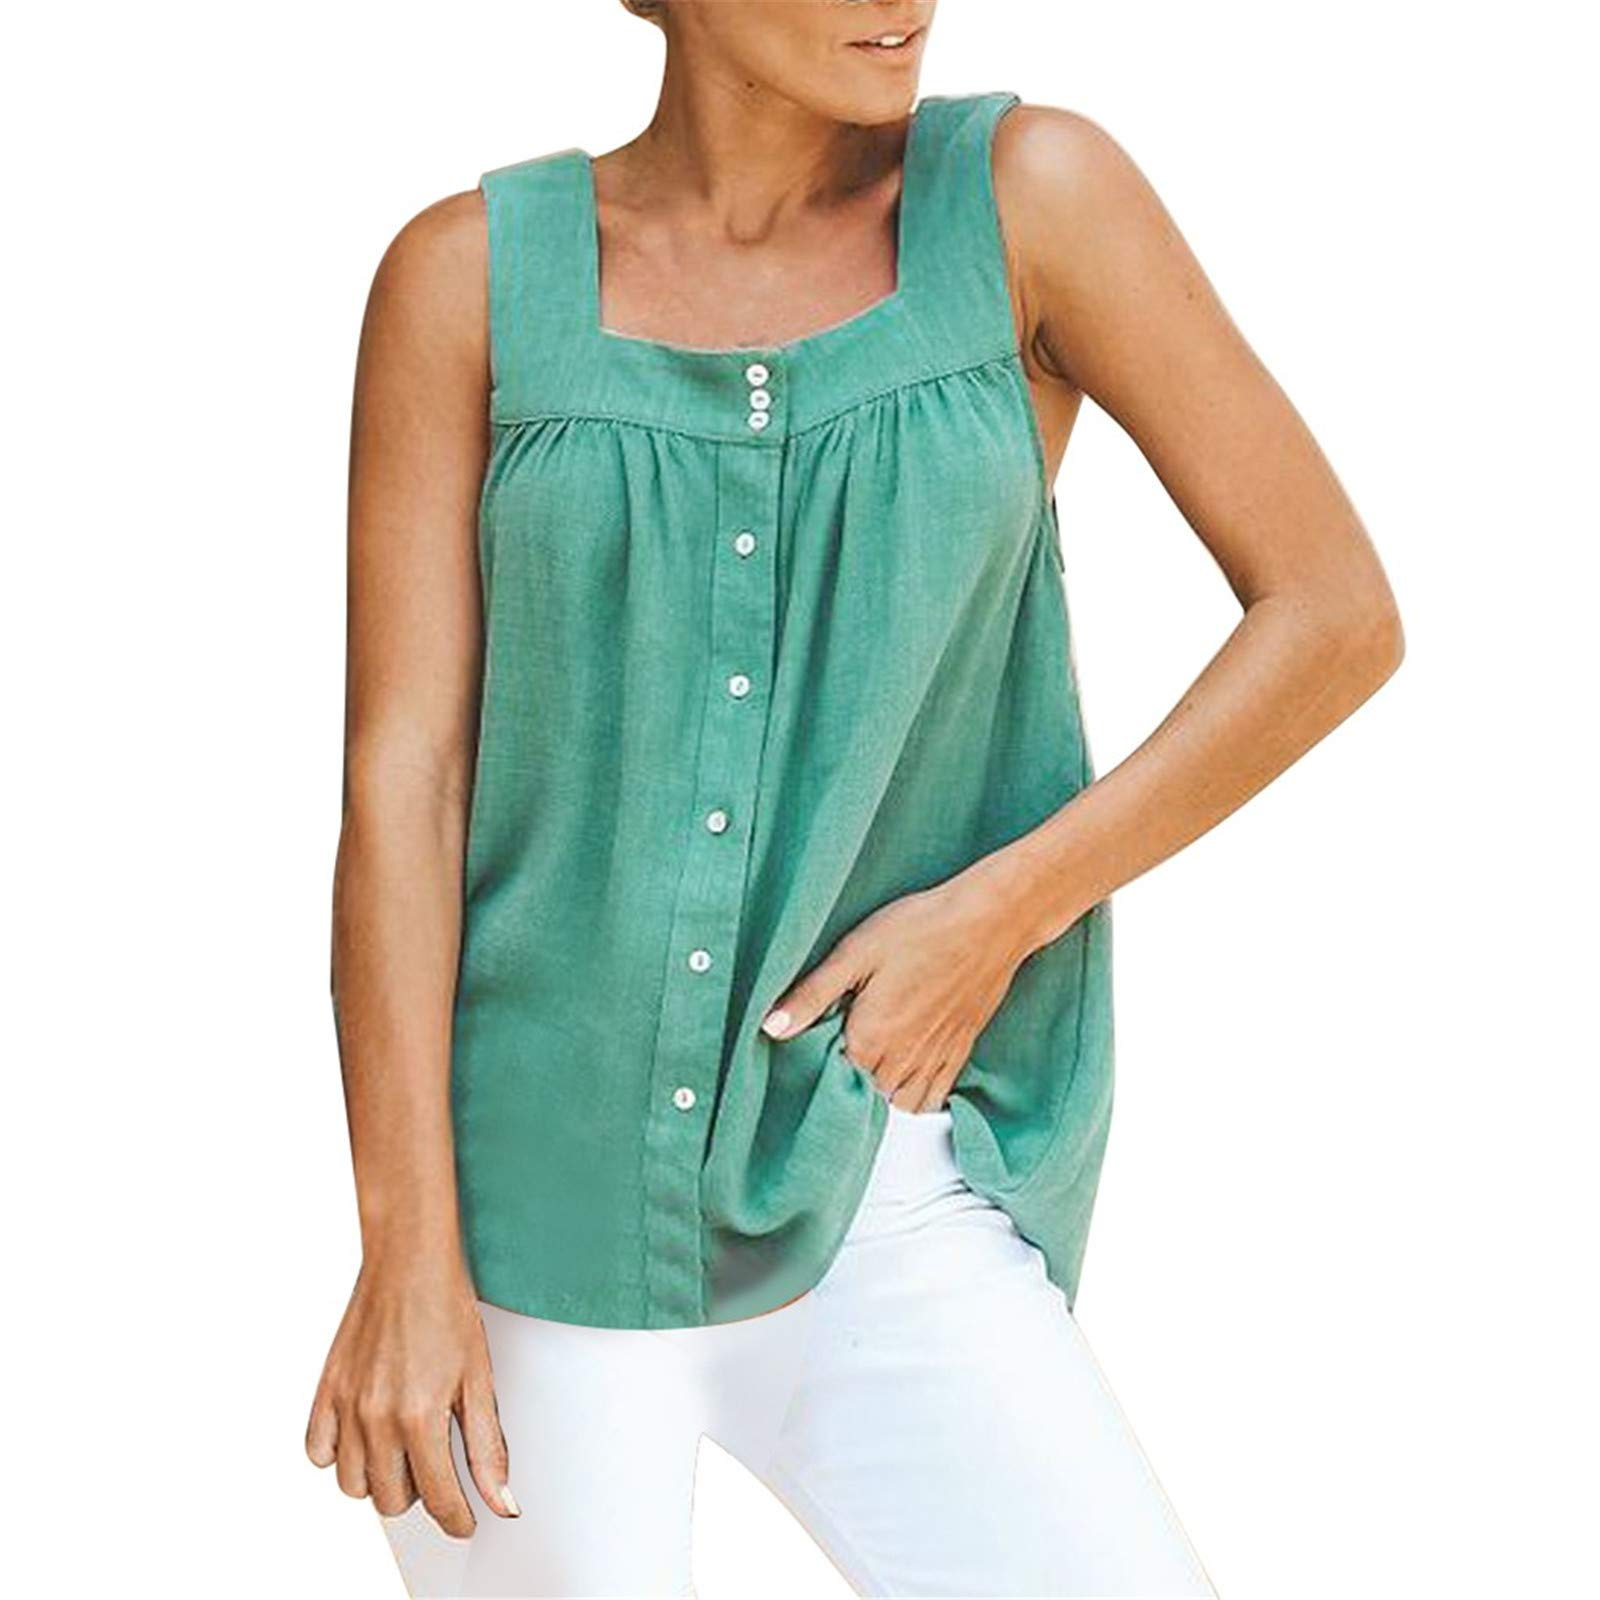 wodceeke Womens Tank Top,Summer Soild Button Pleated Sleeveless camisole Tops(Green,L)